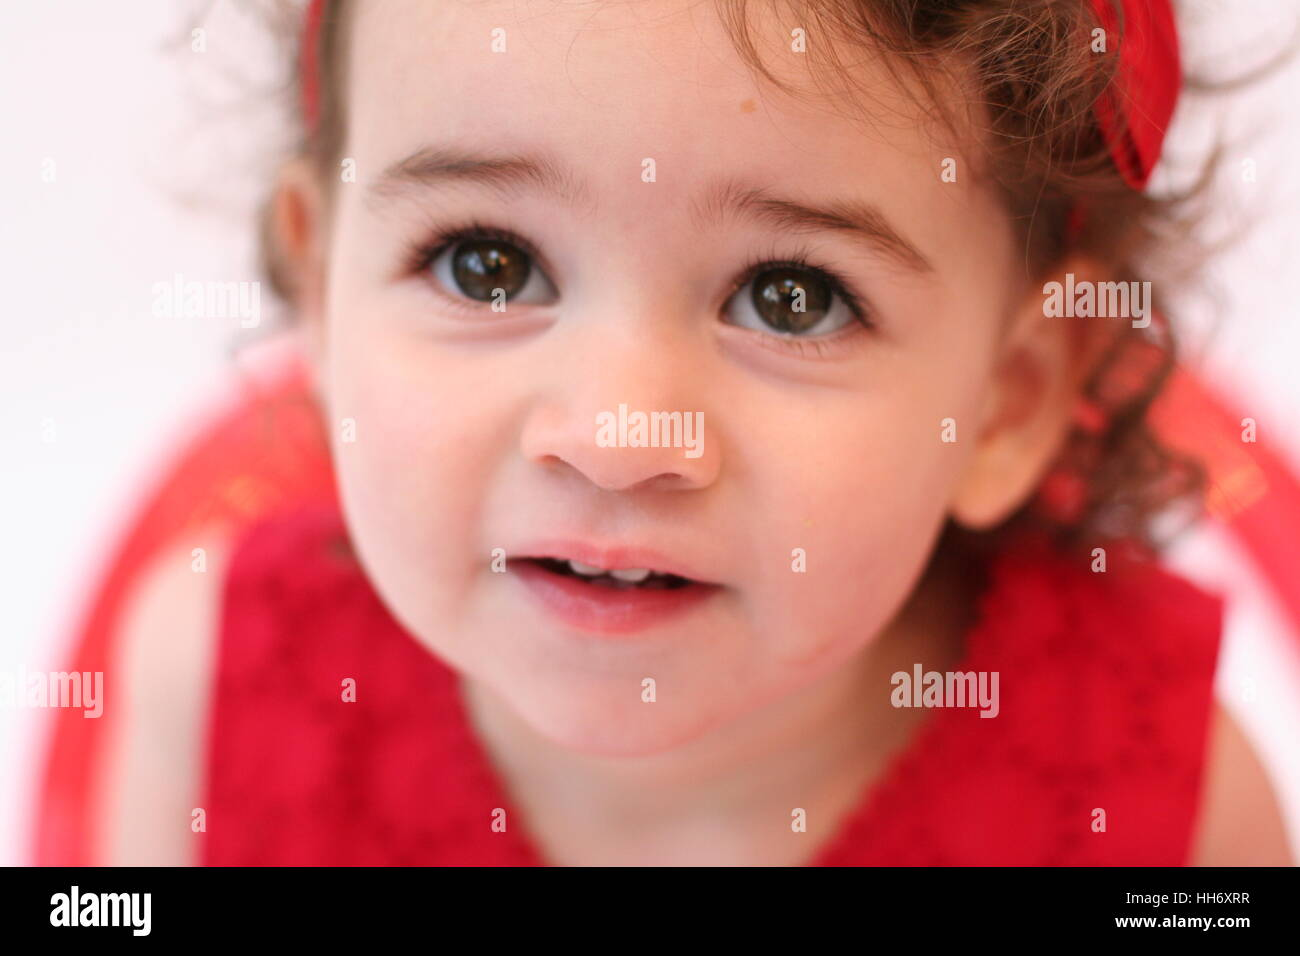 close up of a sweet baby girl child kid toddler with curly hair and